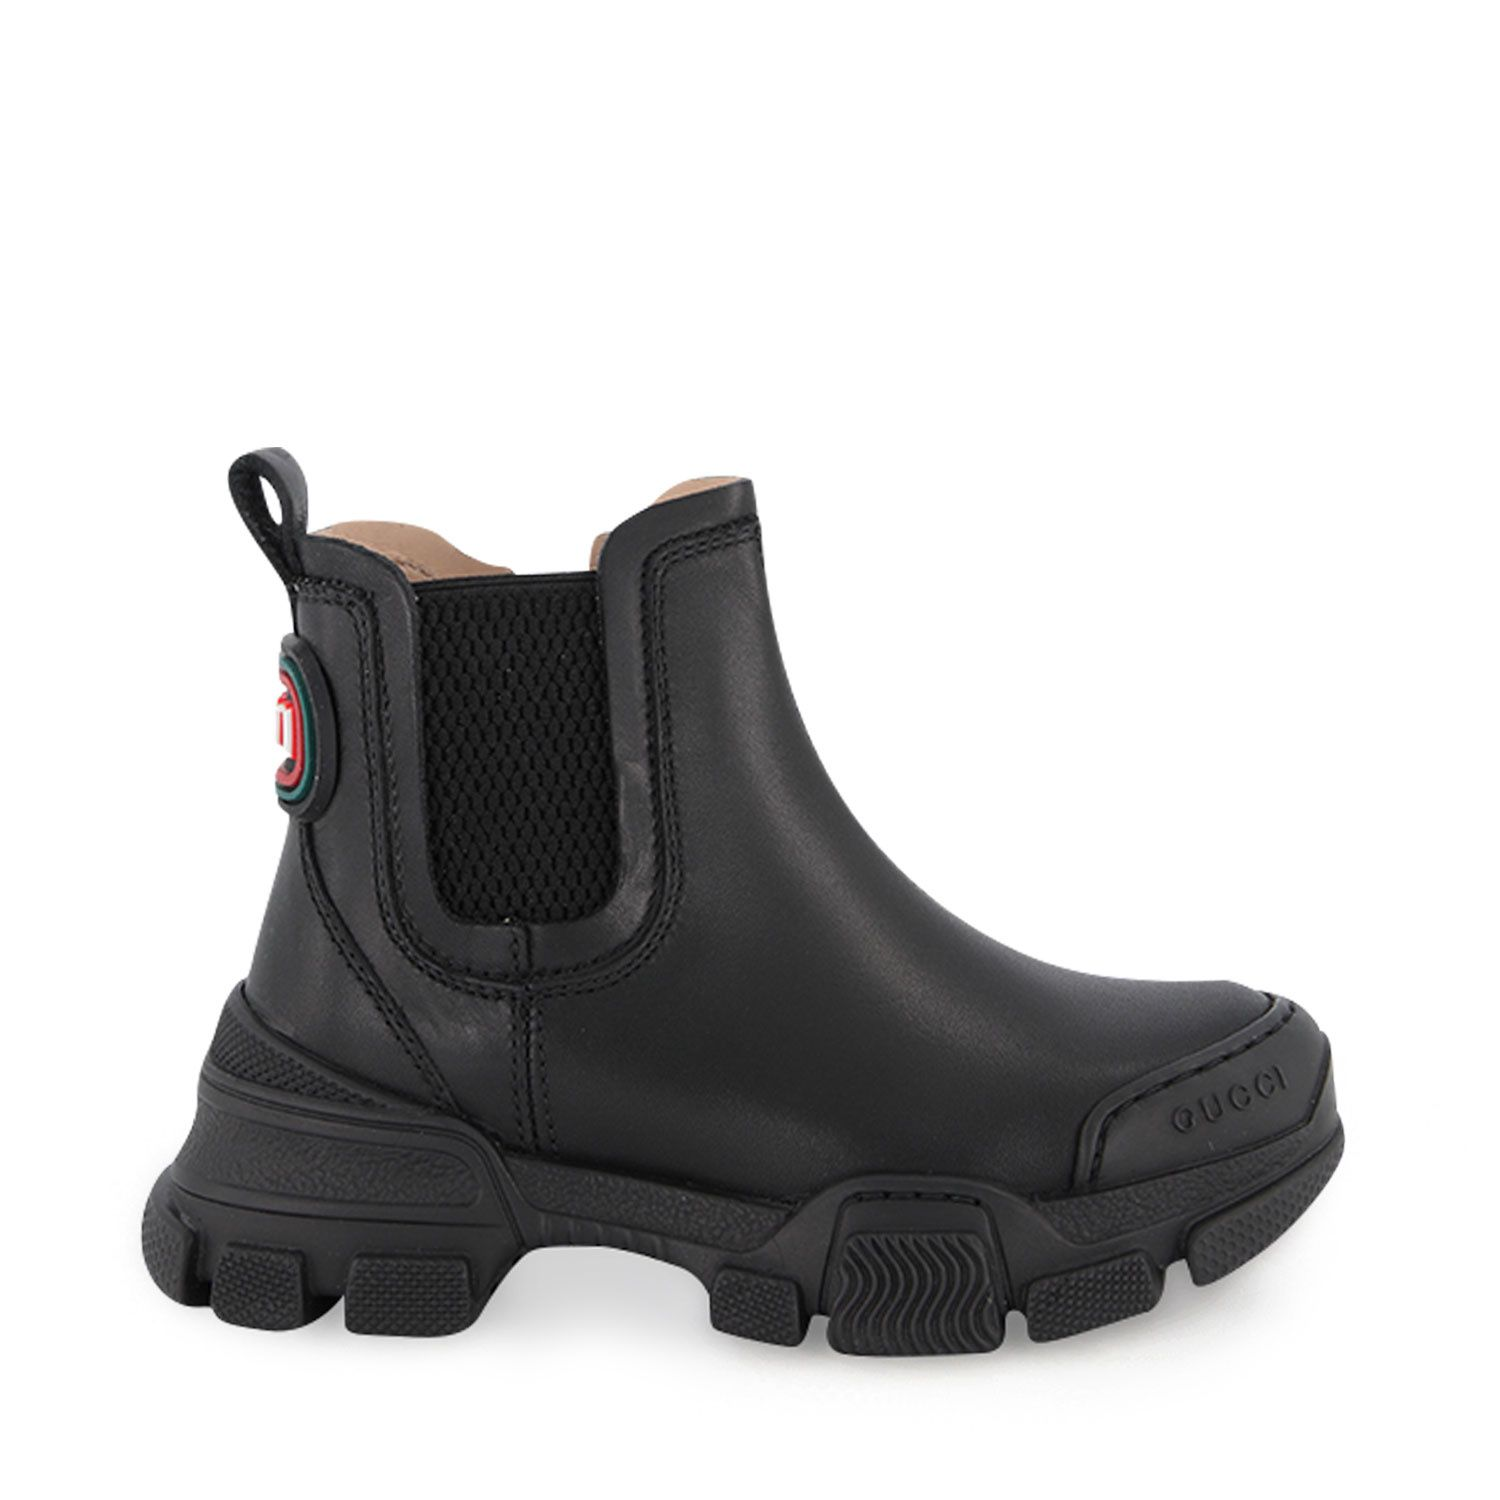 Picture of Gucci 629738 kids boots black